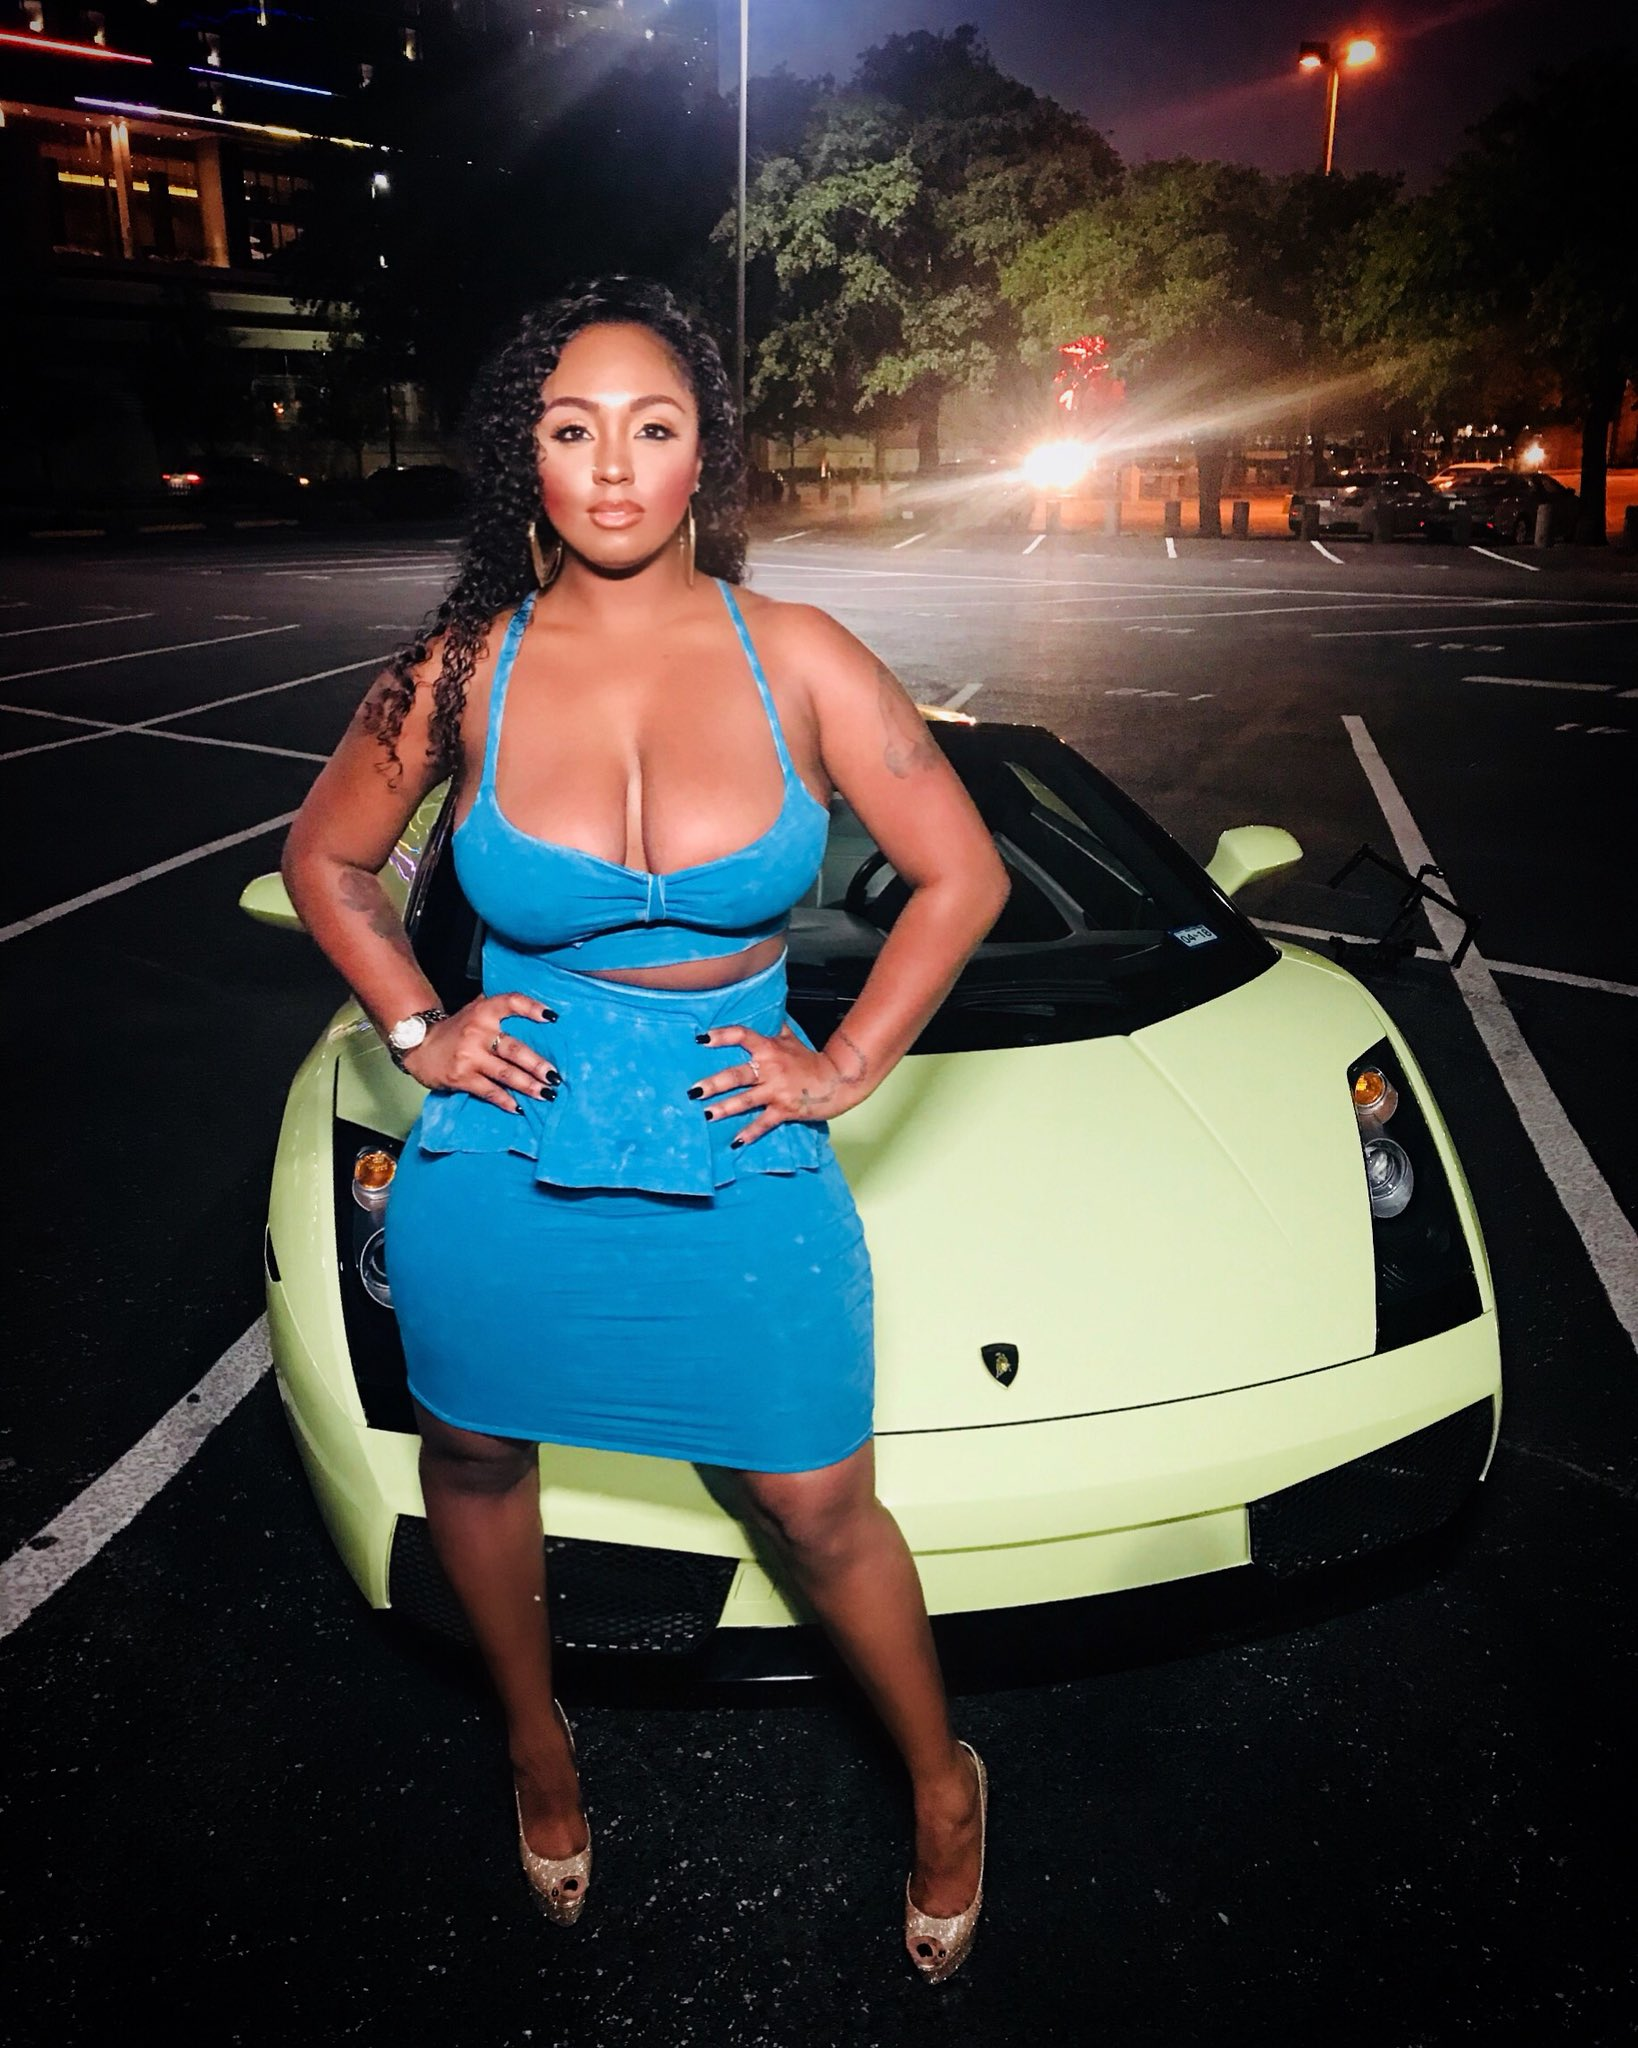 Layton Benton On Twitter Trick Question What Would You Like To Get Inside Me Or The Car  F0 9f 9a 97  F0 9f 91 80 F0 9f 91 80 Onset Working Musicvideo Dallas Texas